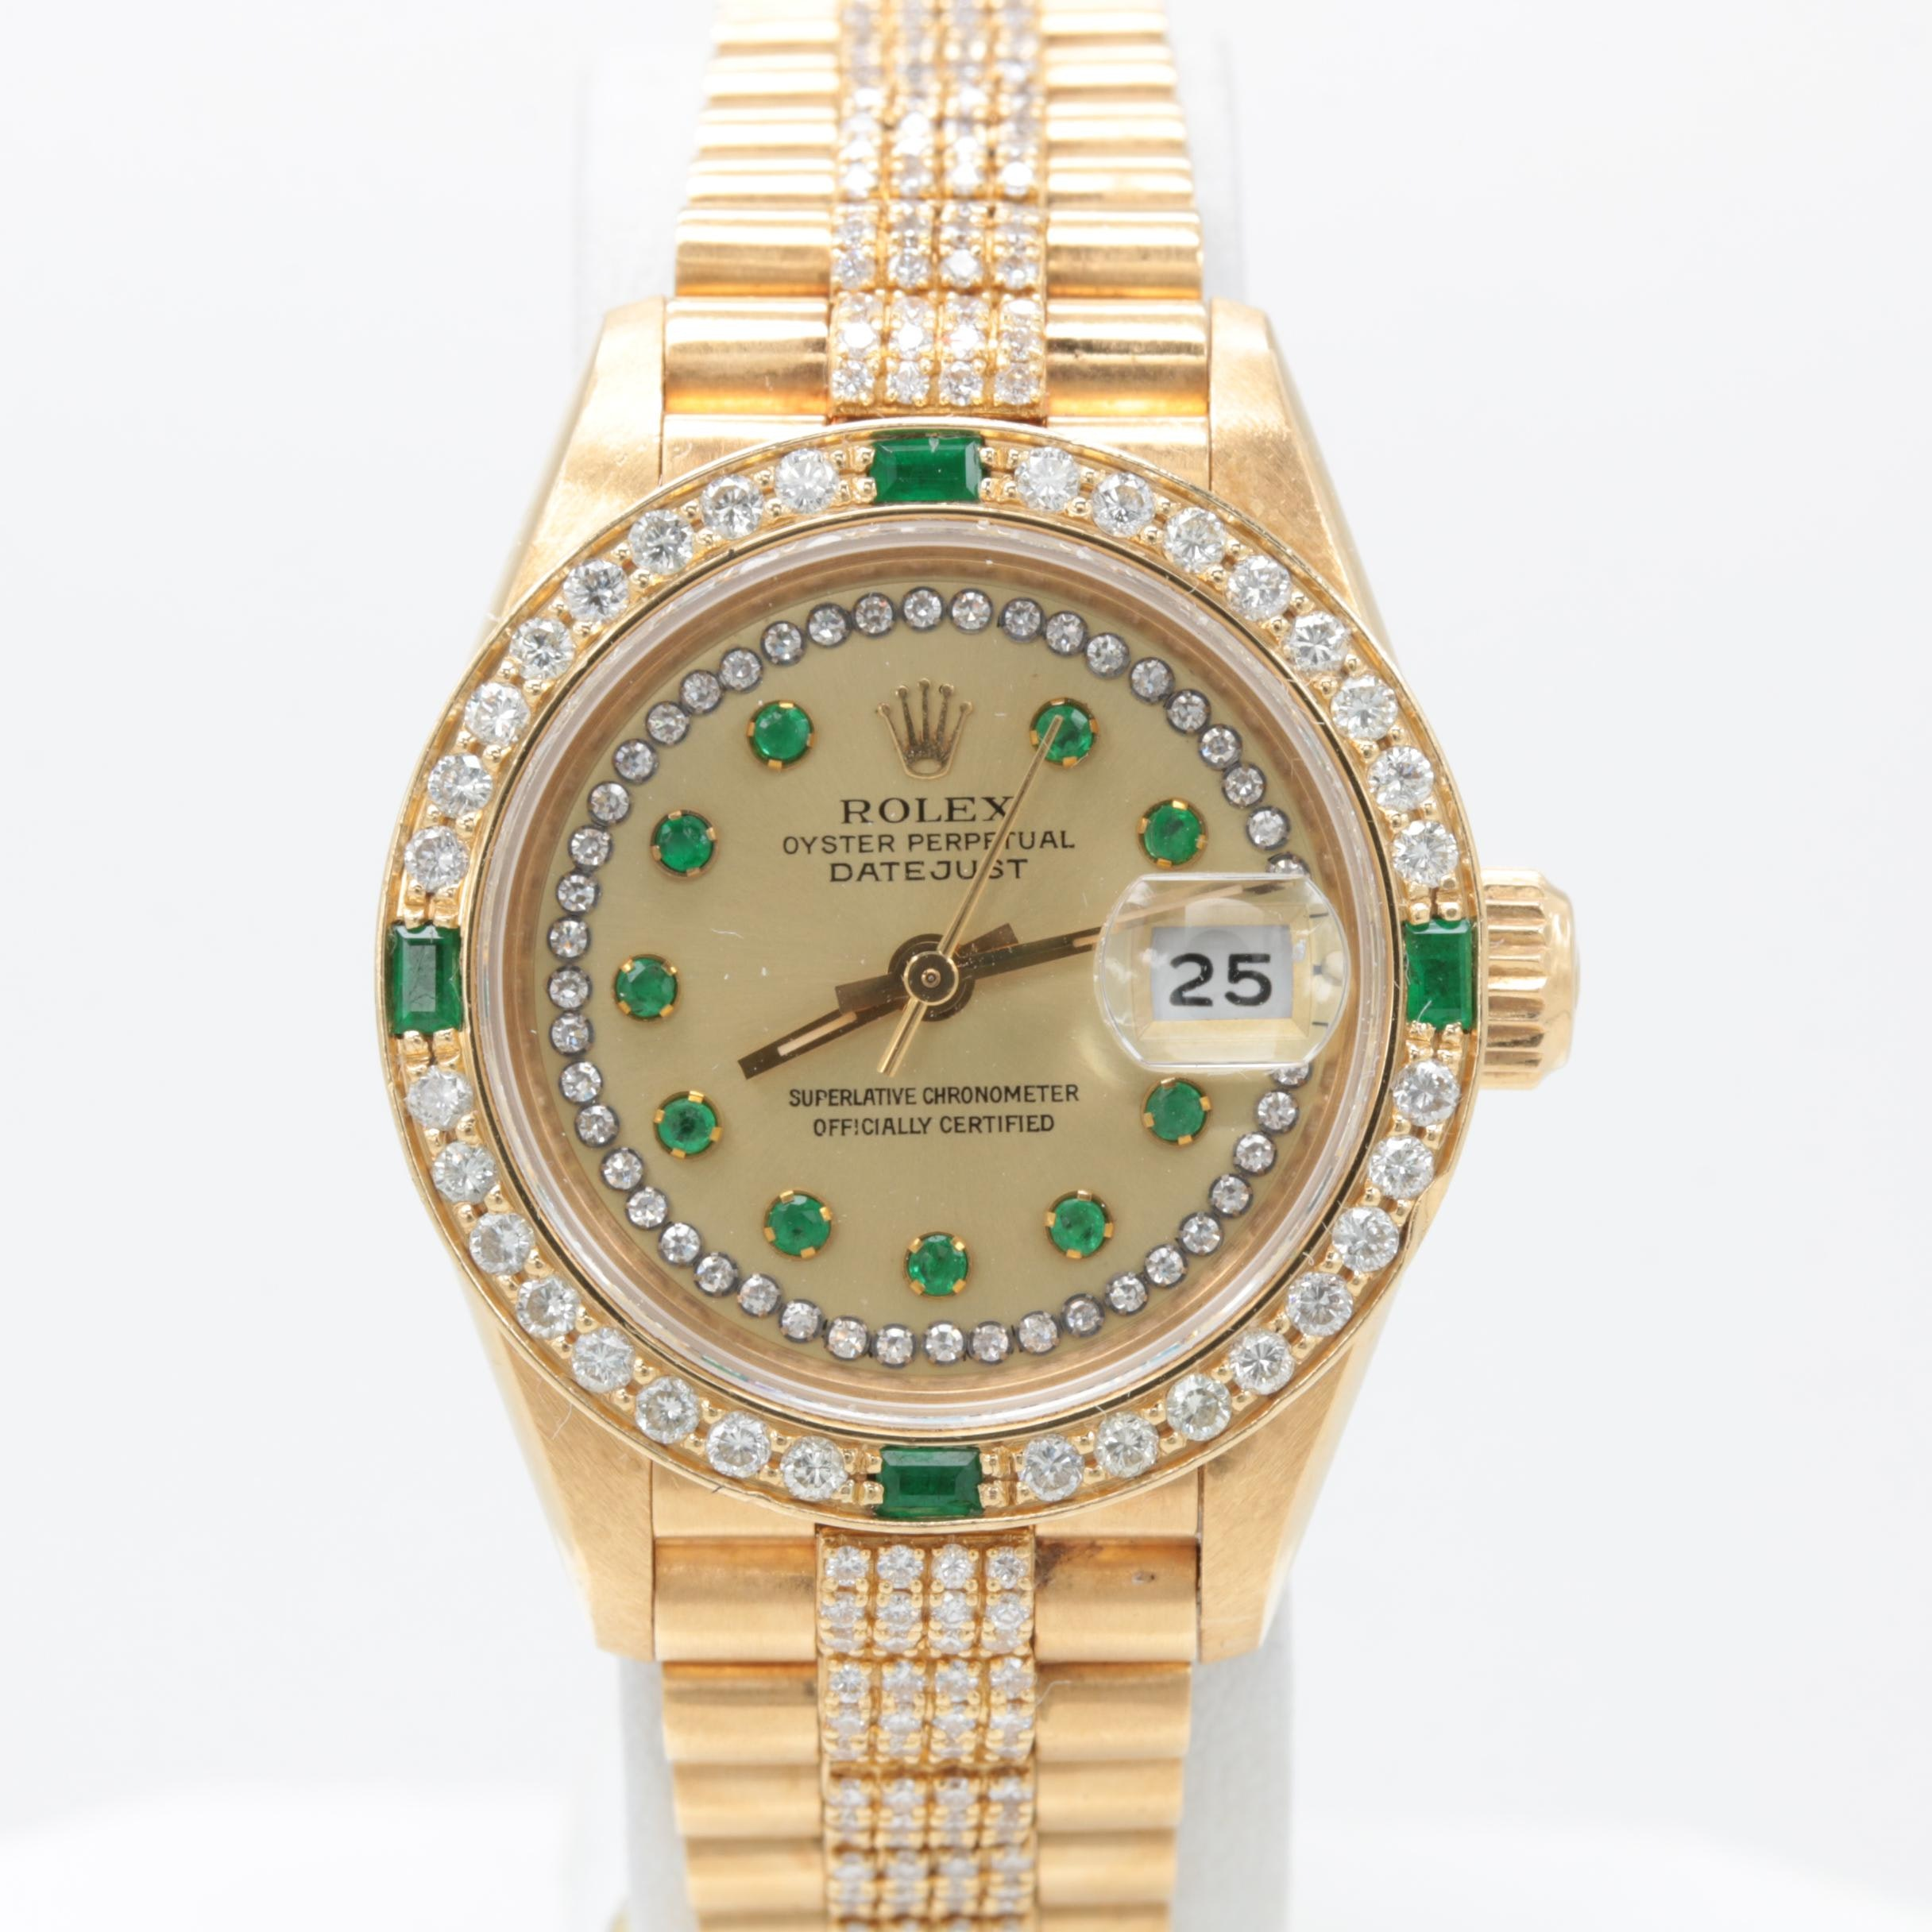 Rolex Datejust 18K Yellow Gold 3.01 CTW Diamond and Emerald Wristwatch